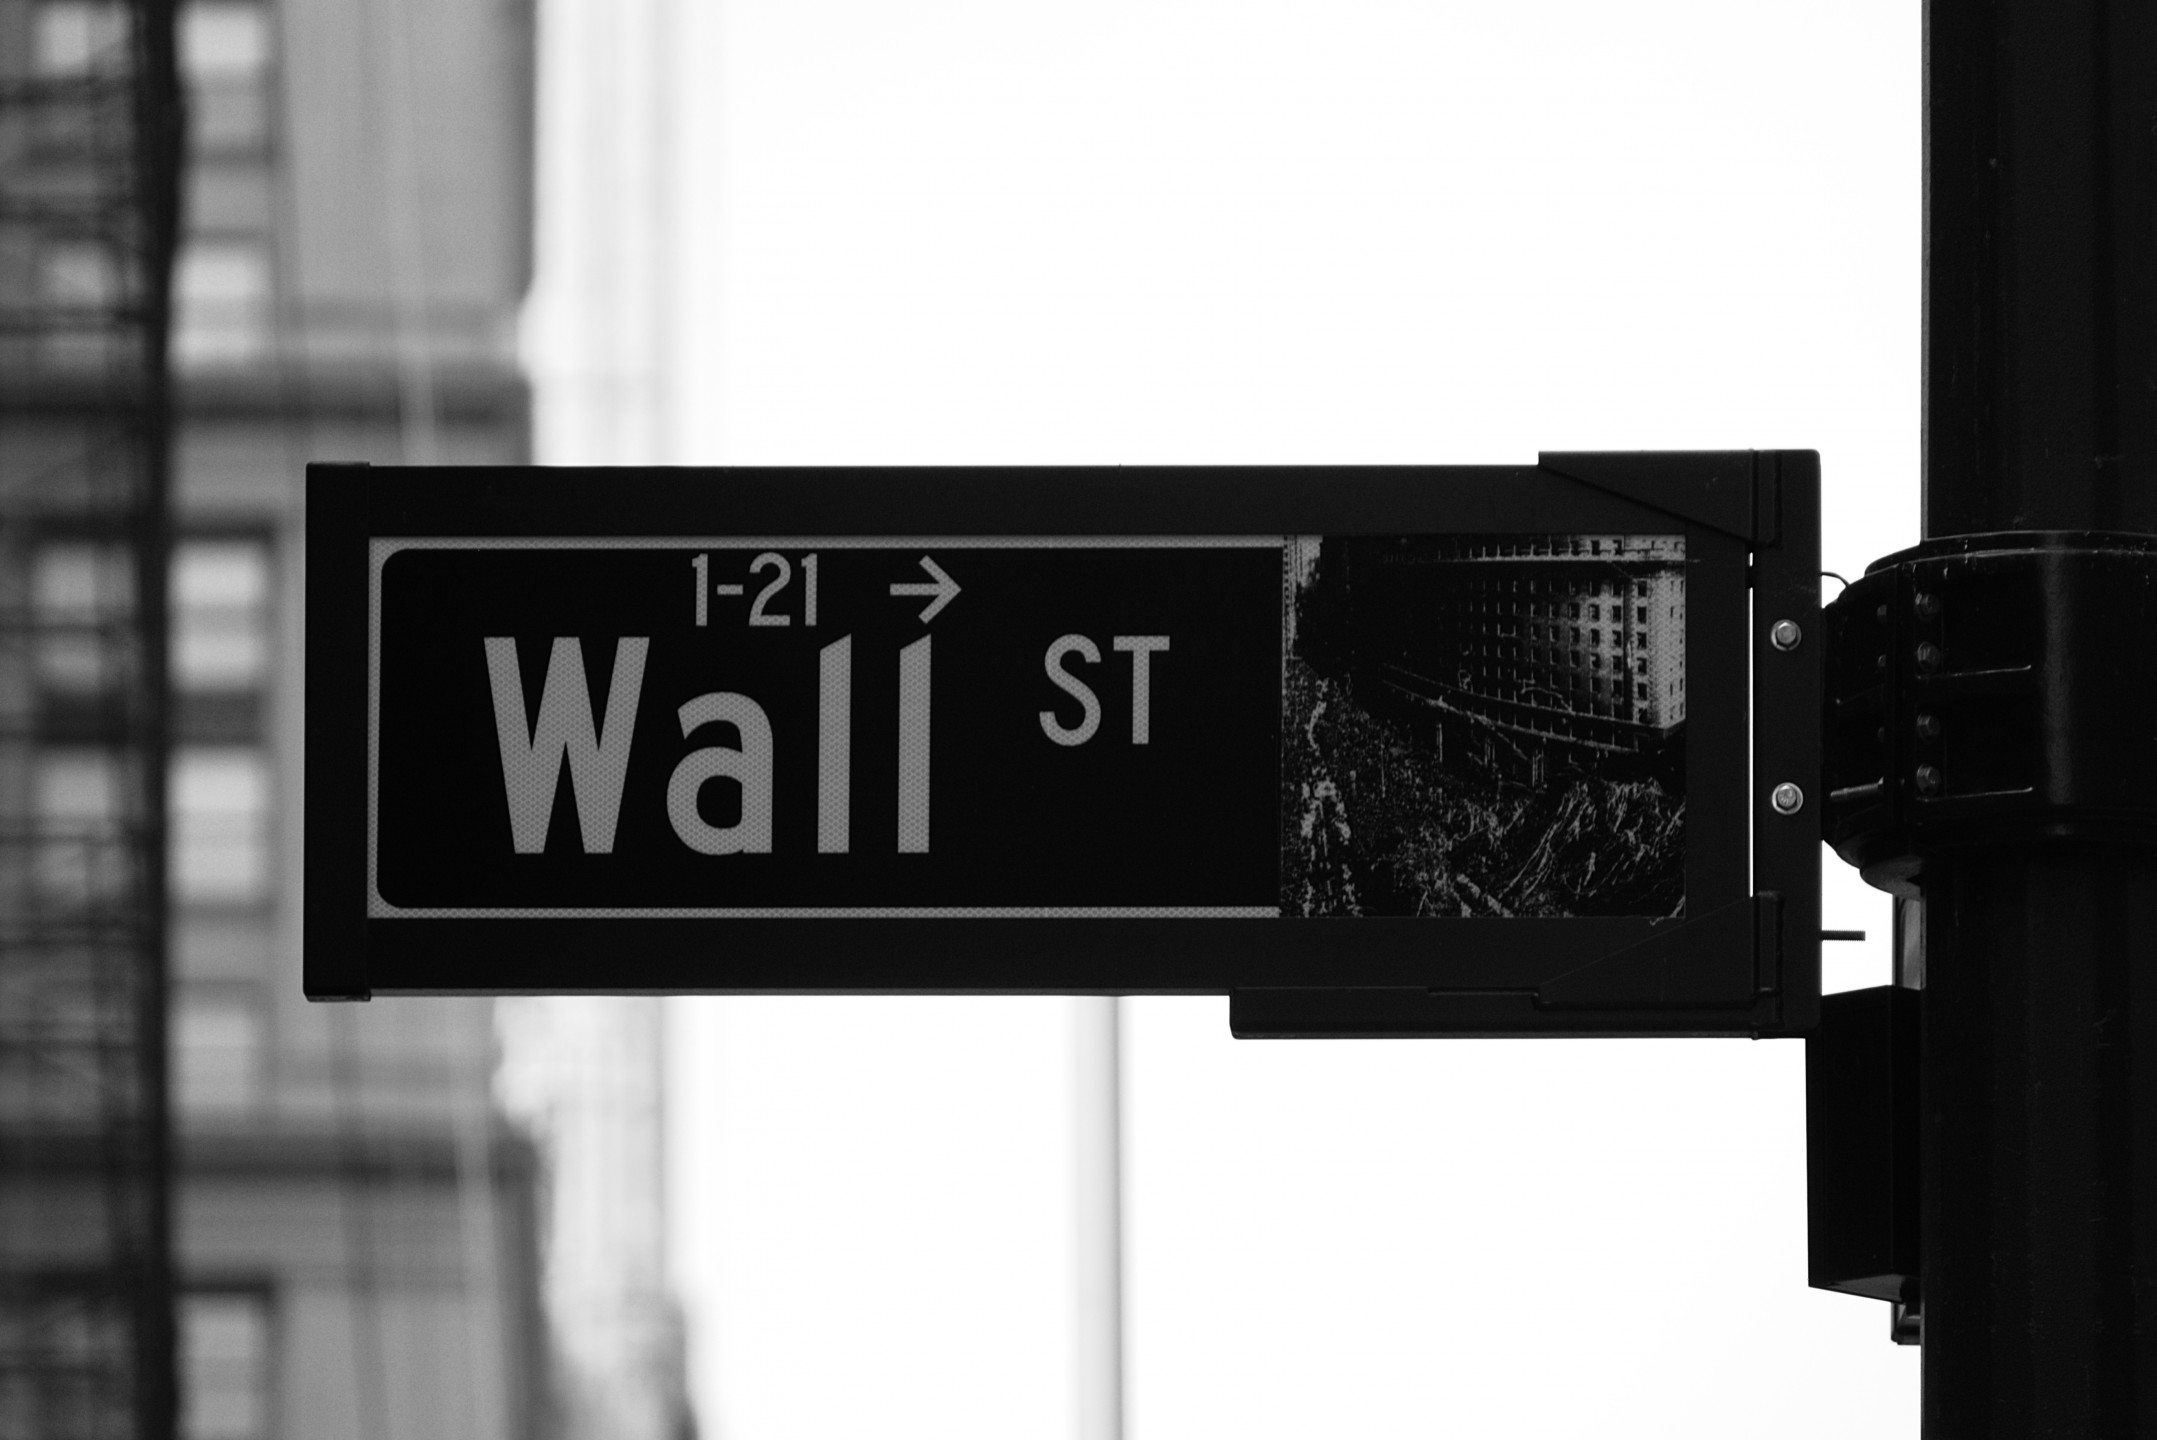 Wall Street opens deep in the red on Monday